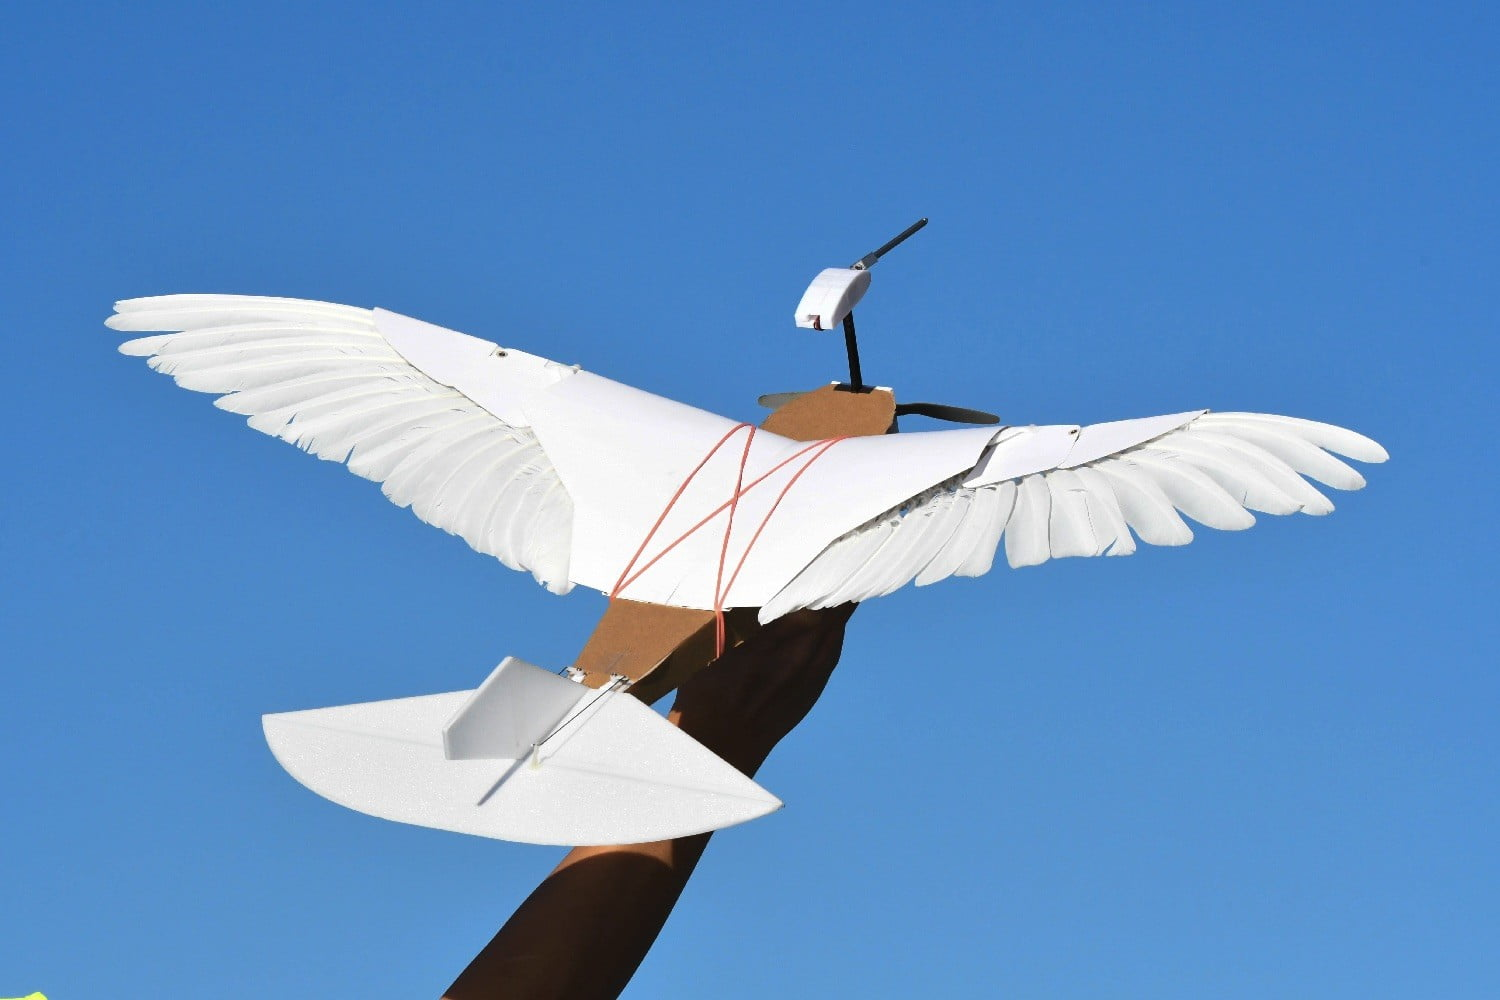 PigeonBot is a drone that flies with feathered wings, just like a real bird